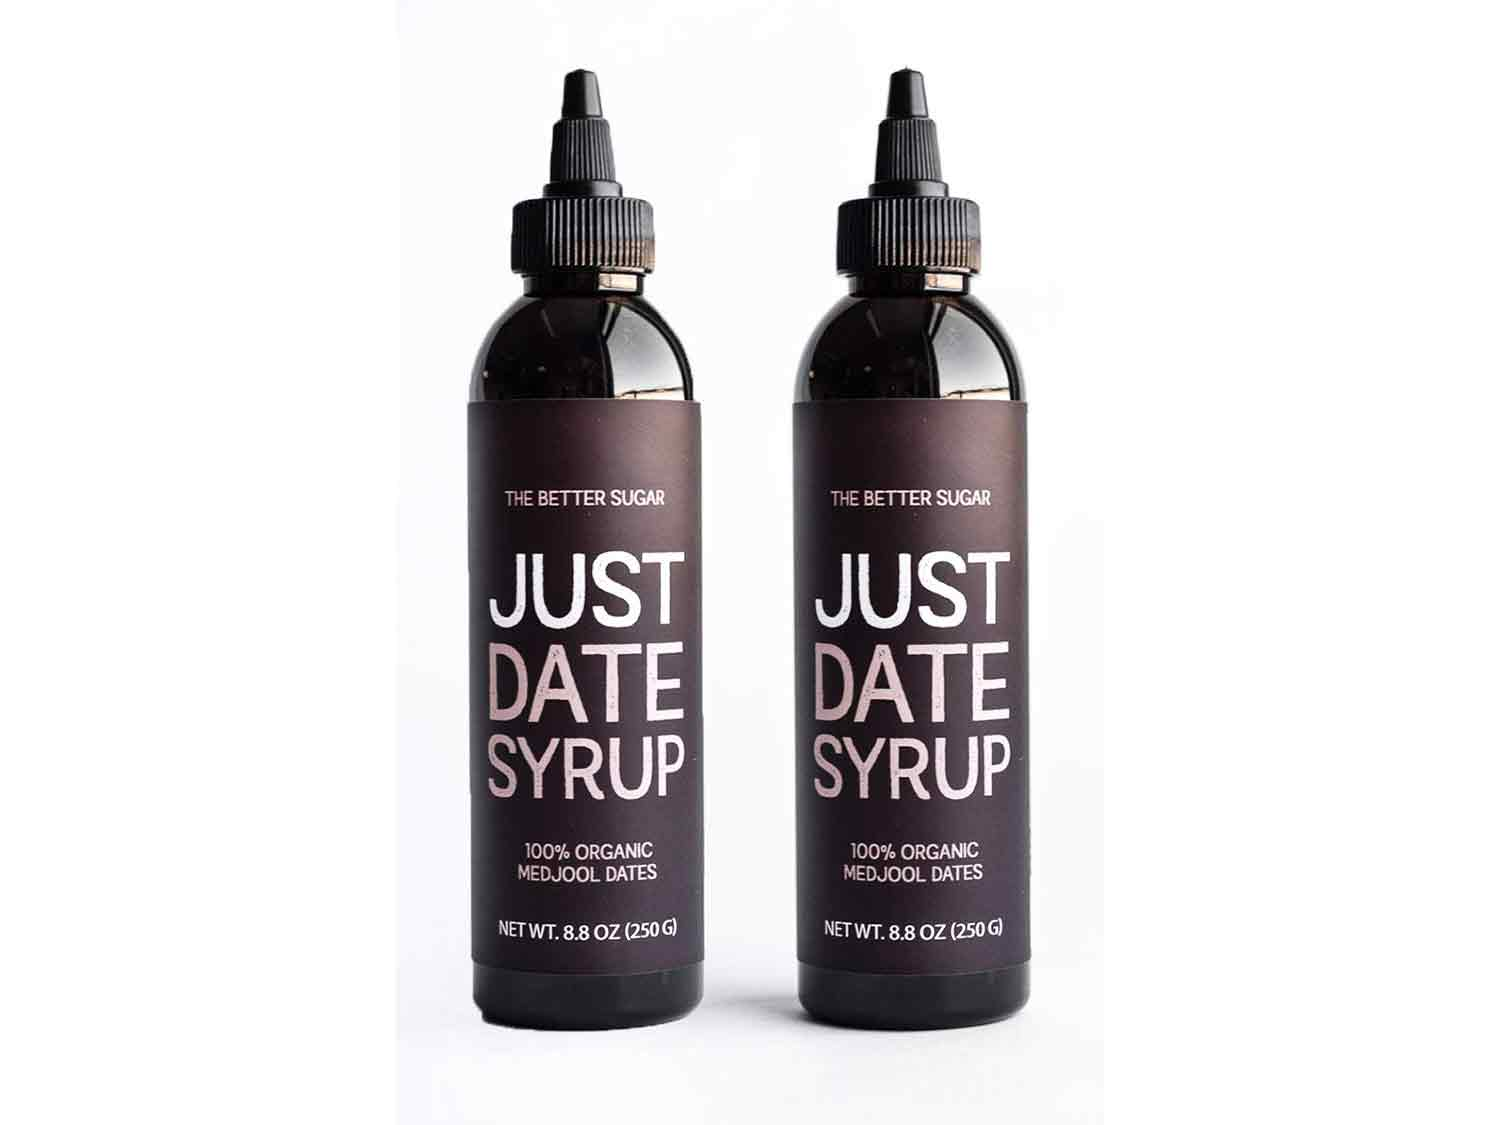 Just Date Syrup: Award-Winning Organic Date Syrup I Two 8.8 OZ Squeeze Bottles I Low-Glycemic, Vegan, Paleo | 1 Ingredient : 100% California Medjool Dates